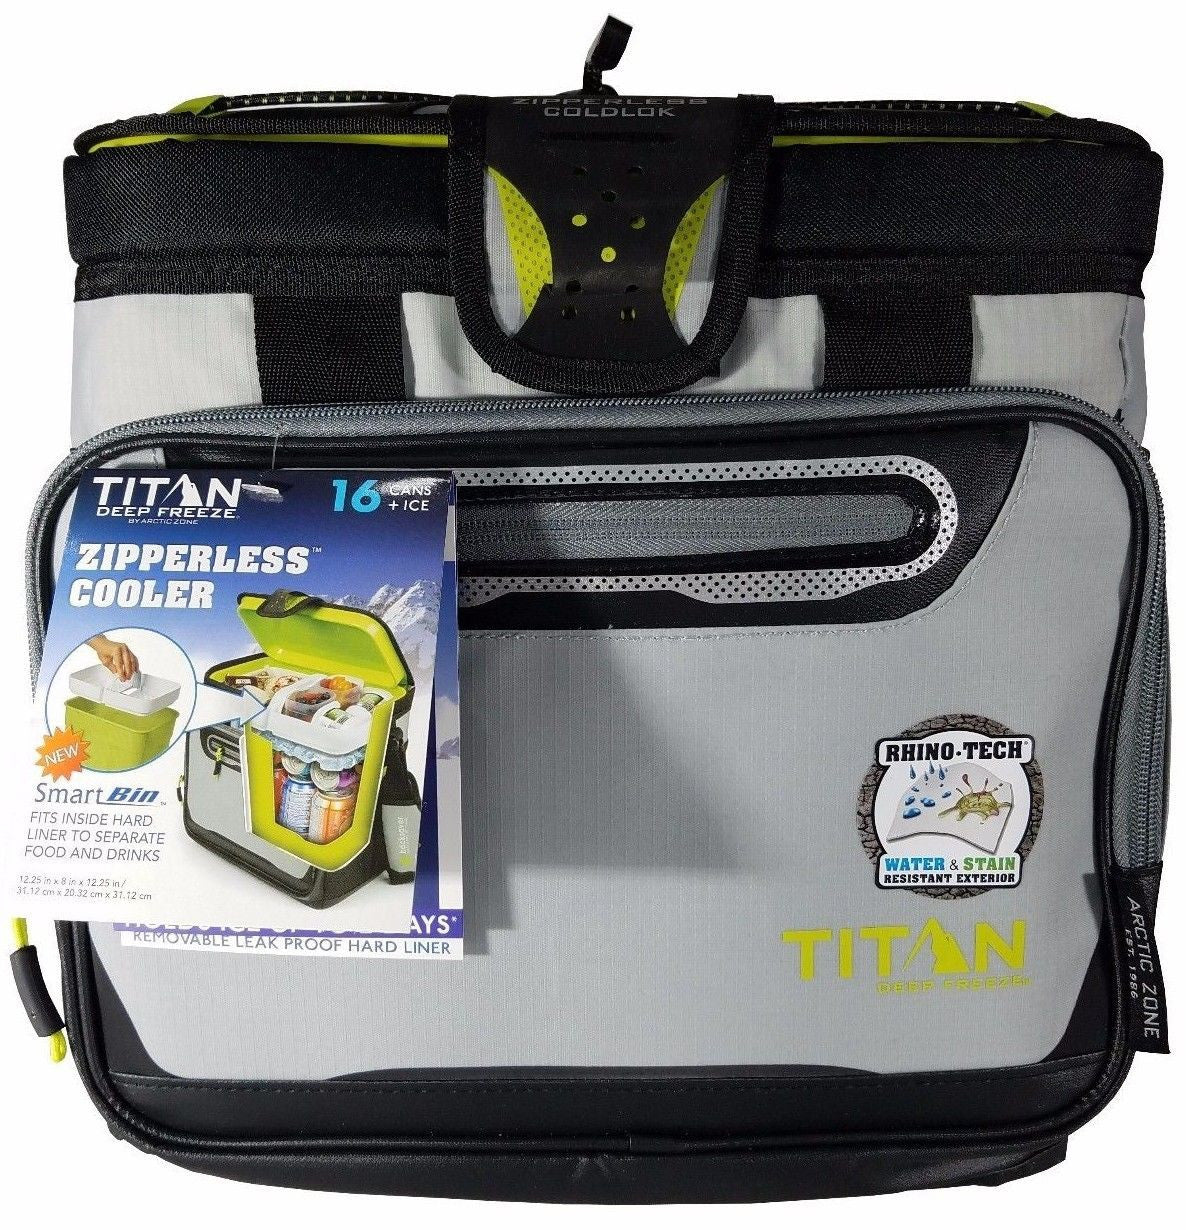 Titan Deep Freeze Zipperless Cooler by Arctic Zone 16 Cans+Ice with Bin - Grey